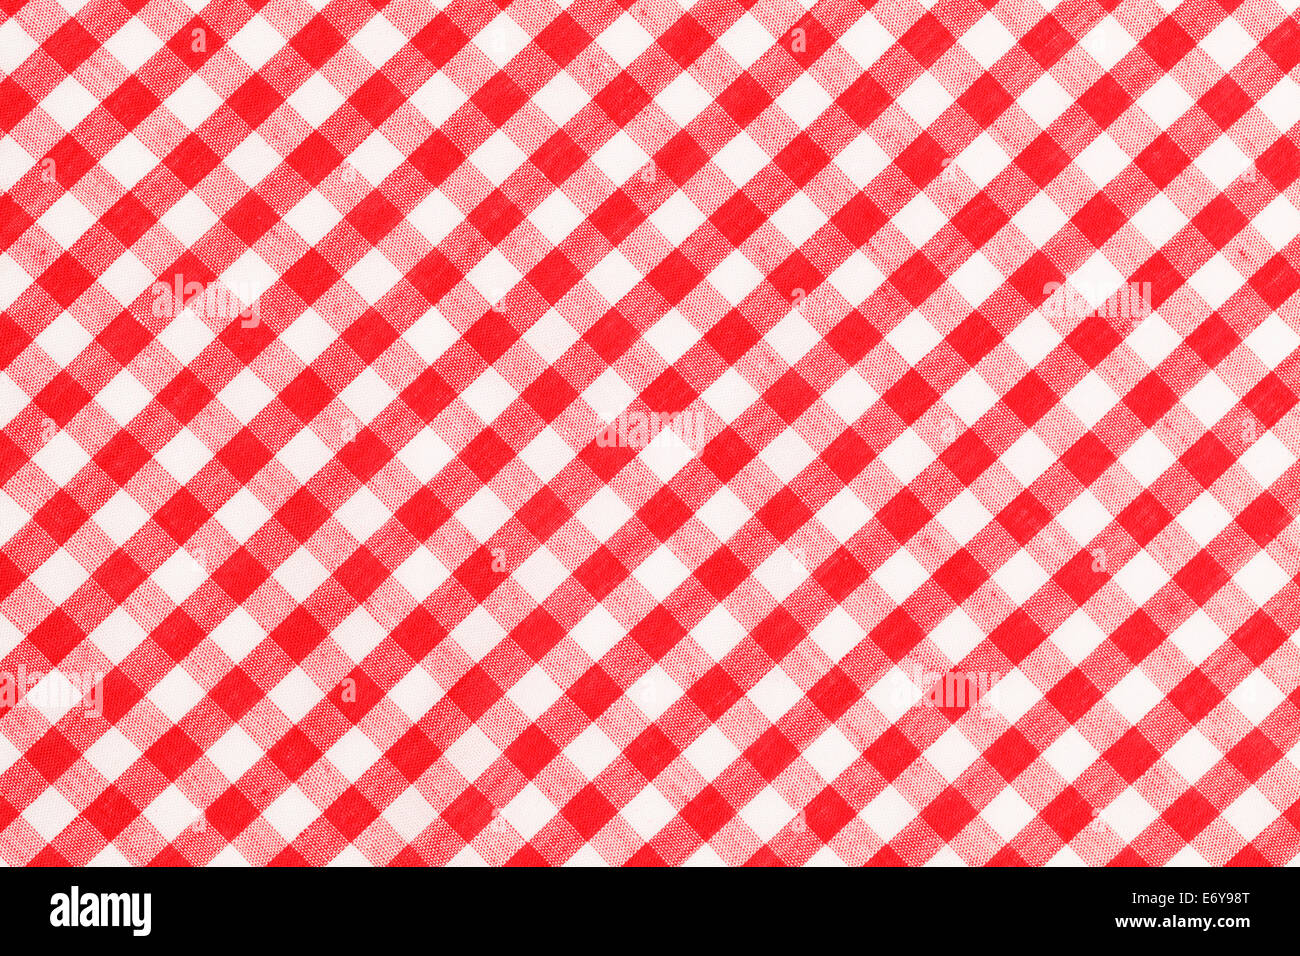 Red And White Checkered Table Cloth Background